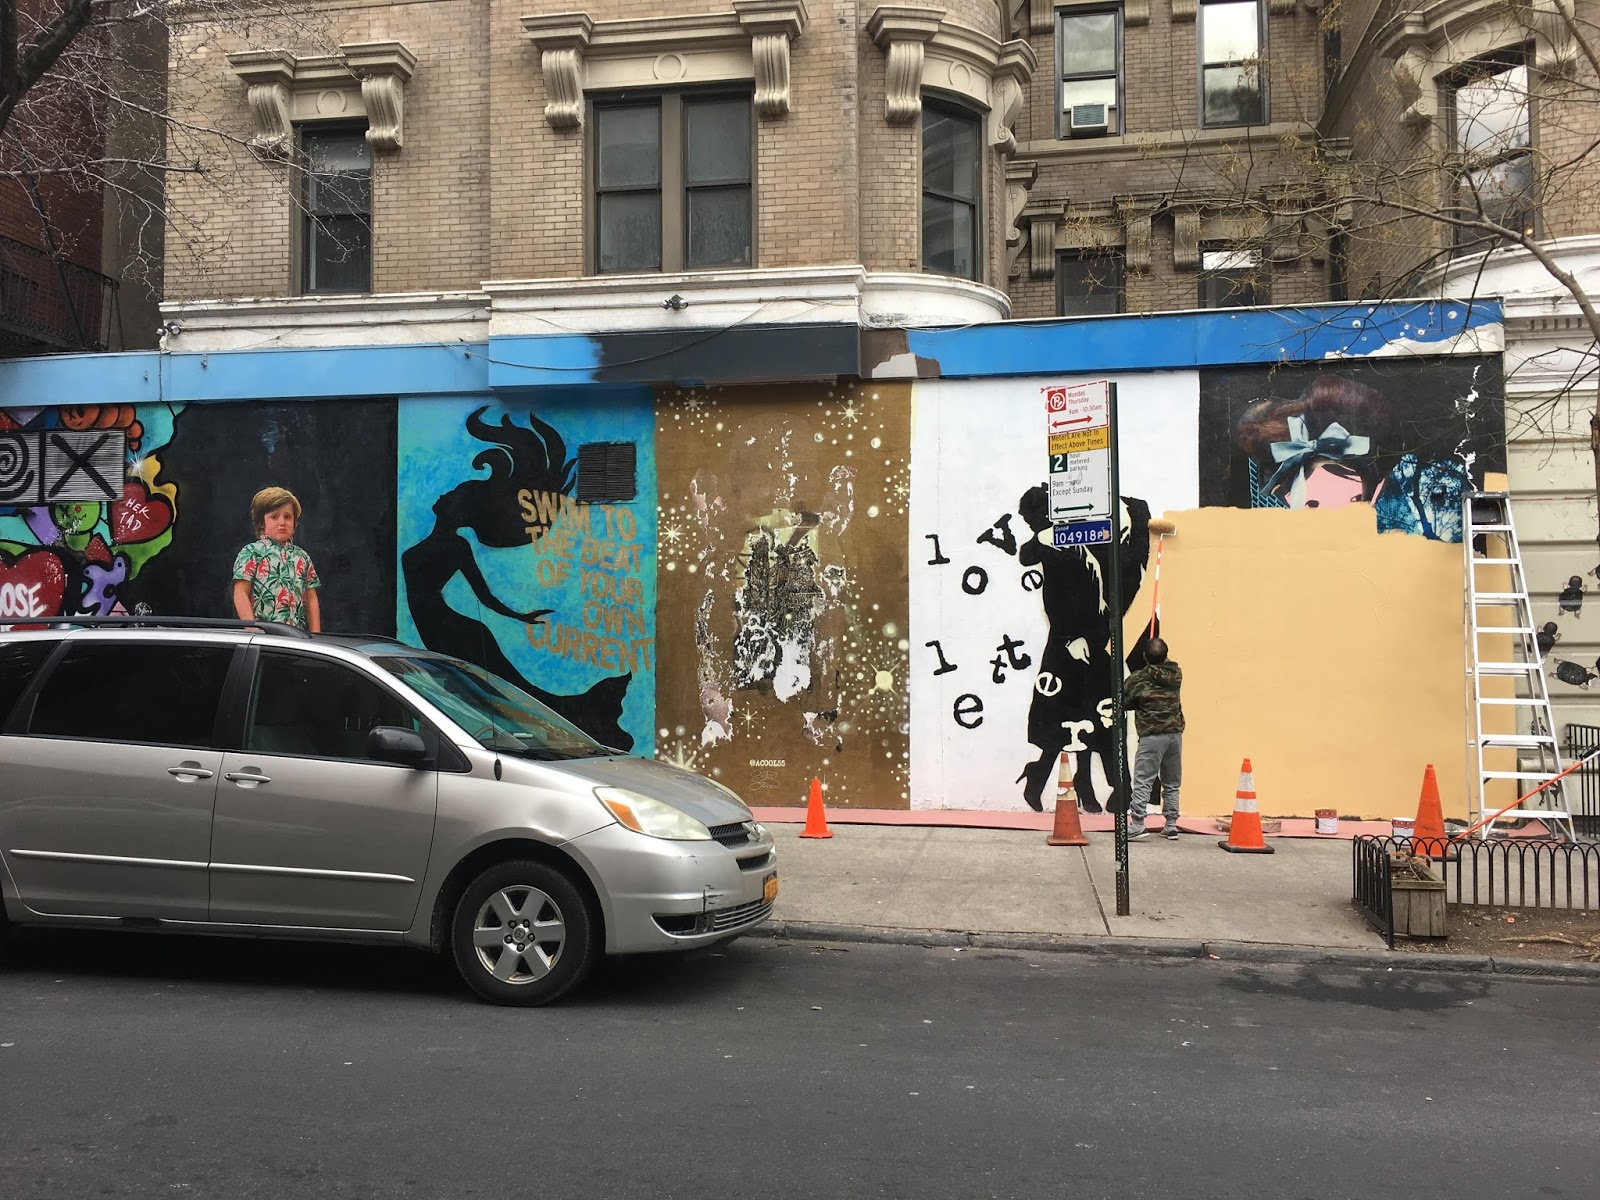 Meanwhile A Worker Painted Over The Murals On 12th Street Side Yesterday As This Photo Via EVG Reader Charlie Chen Shows